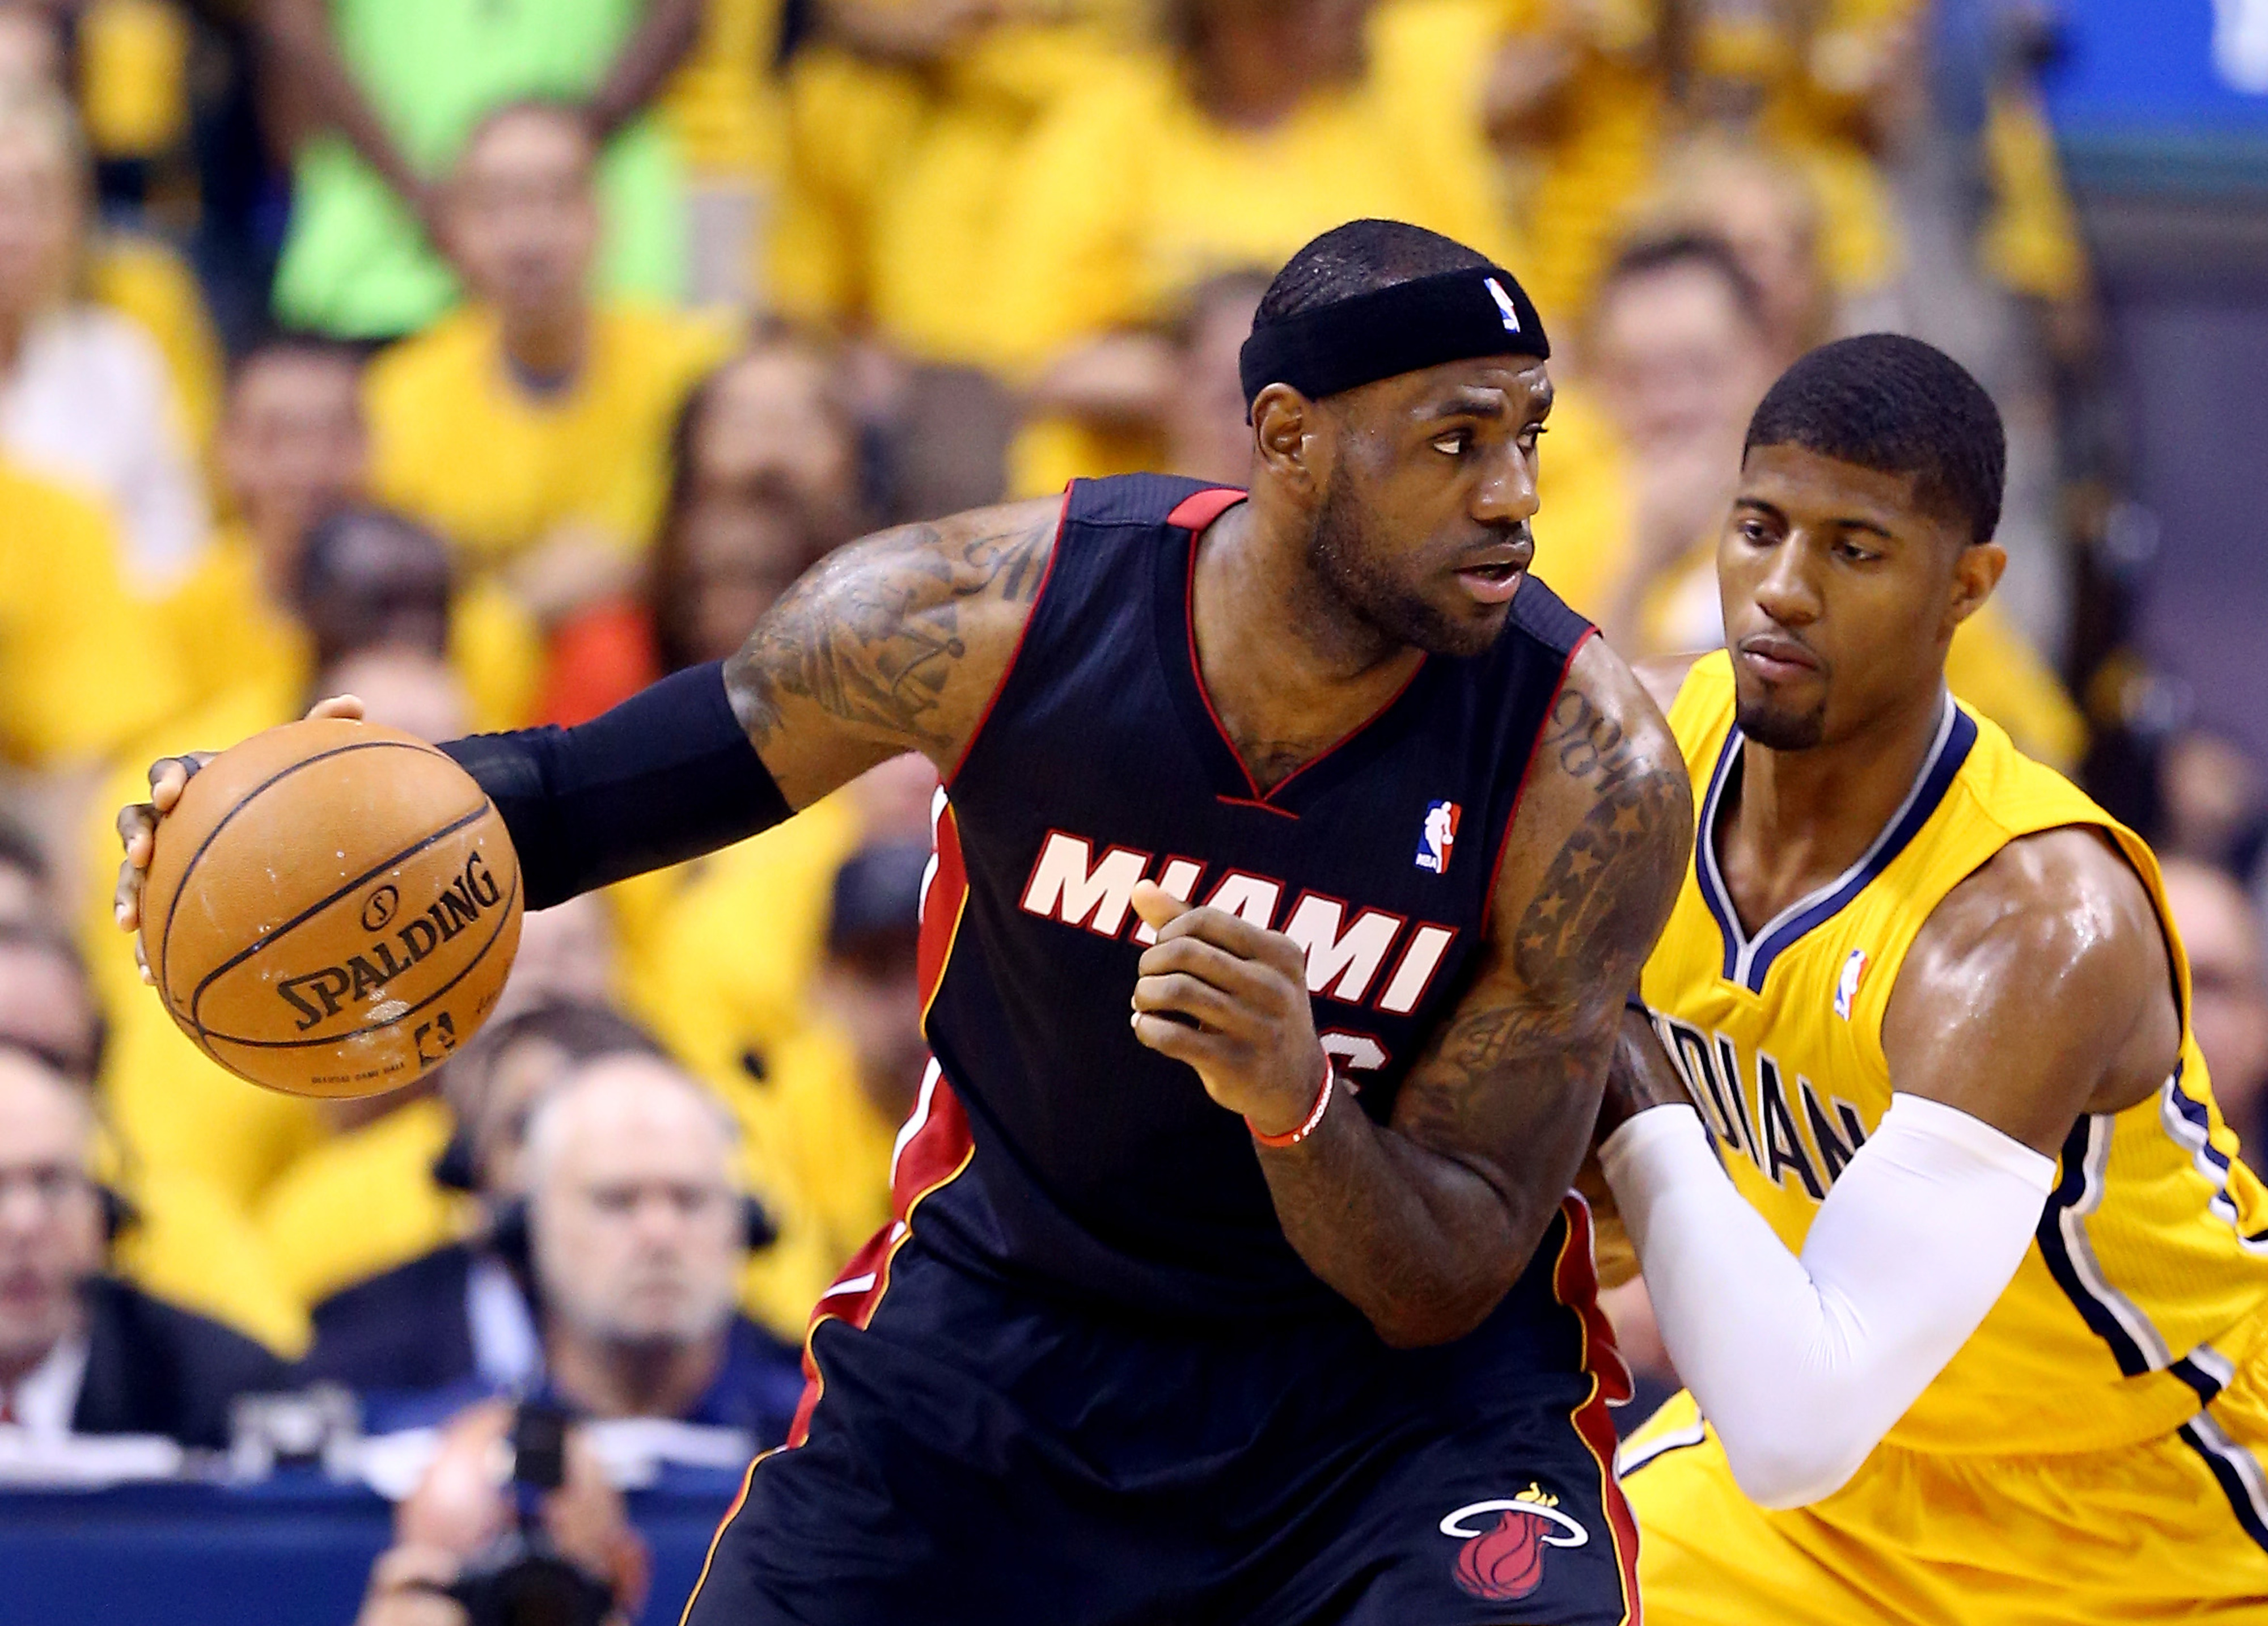 Heat vs. Pacers final score, NBA playoffs 2014: LeBron James takes over as Heat level series, 1-1